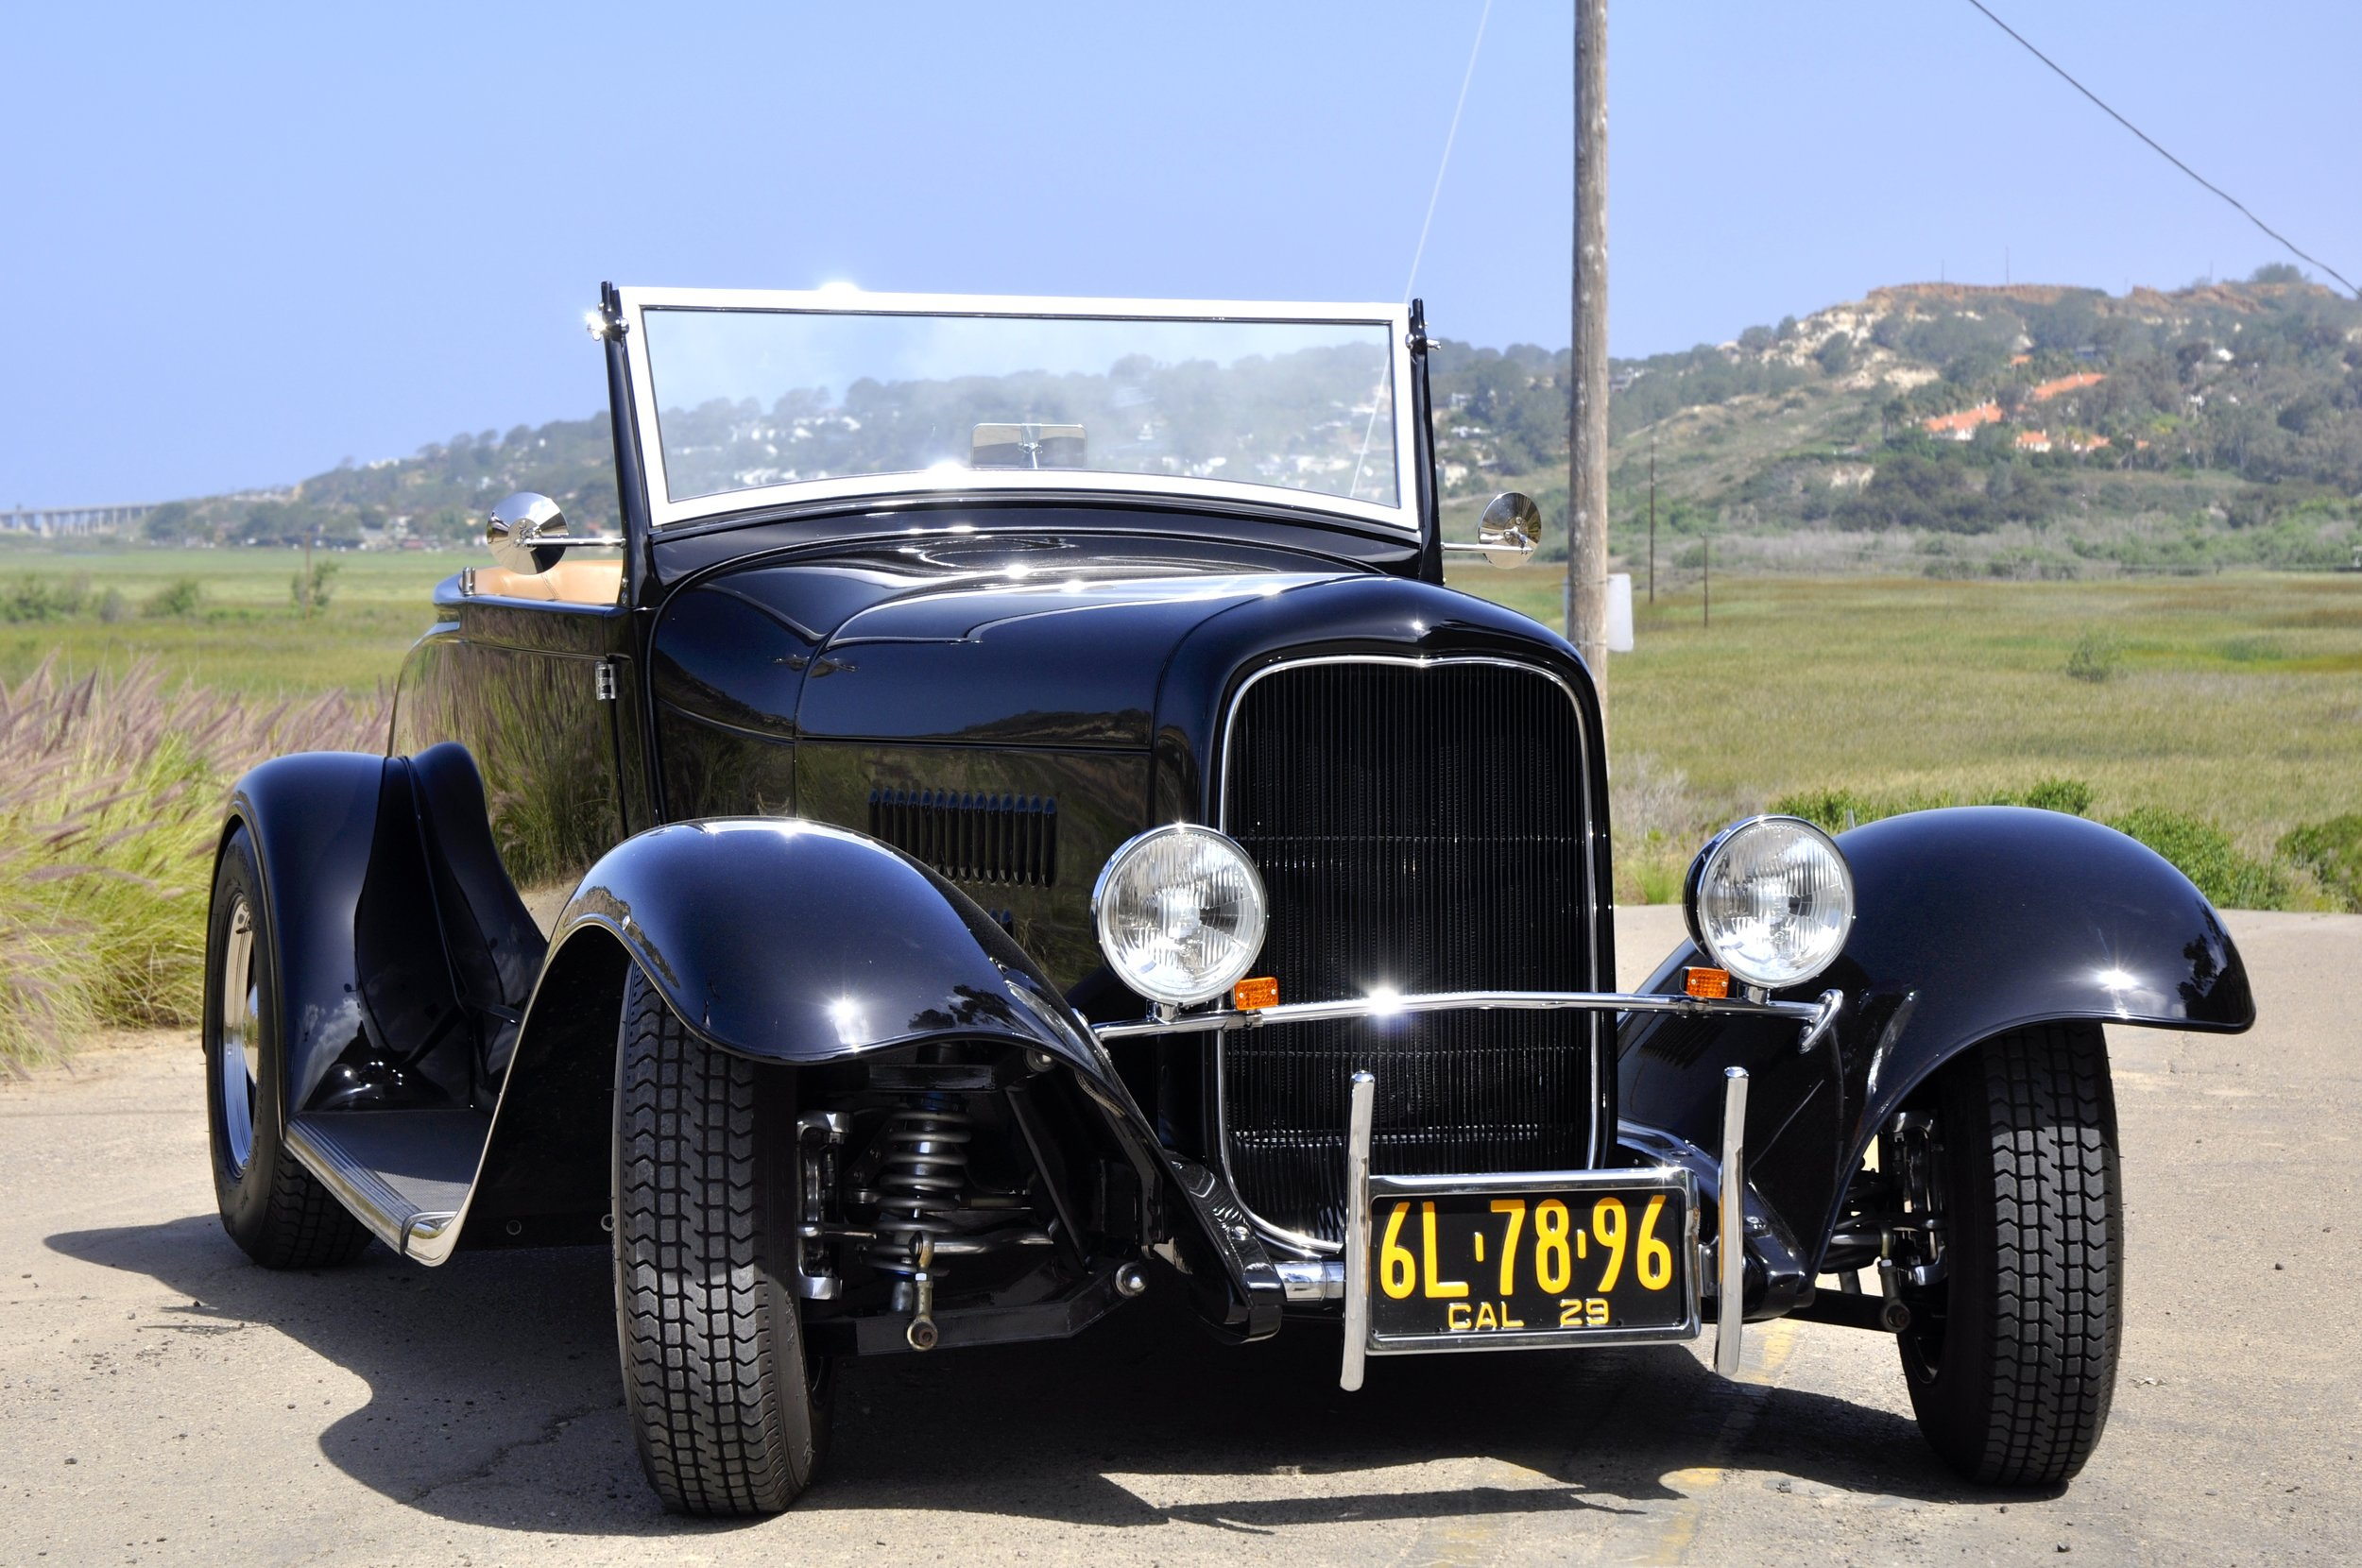 1929 Ford model a - hot rod - $56,700